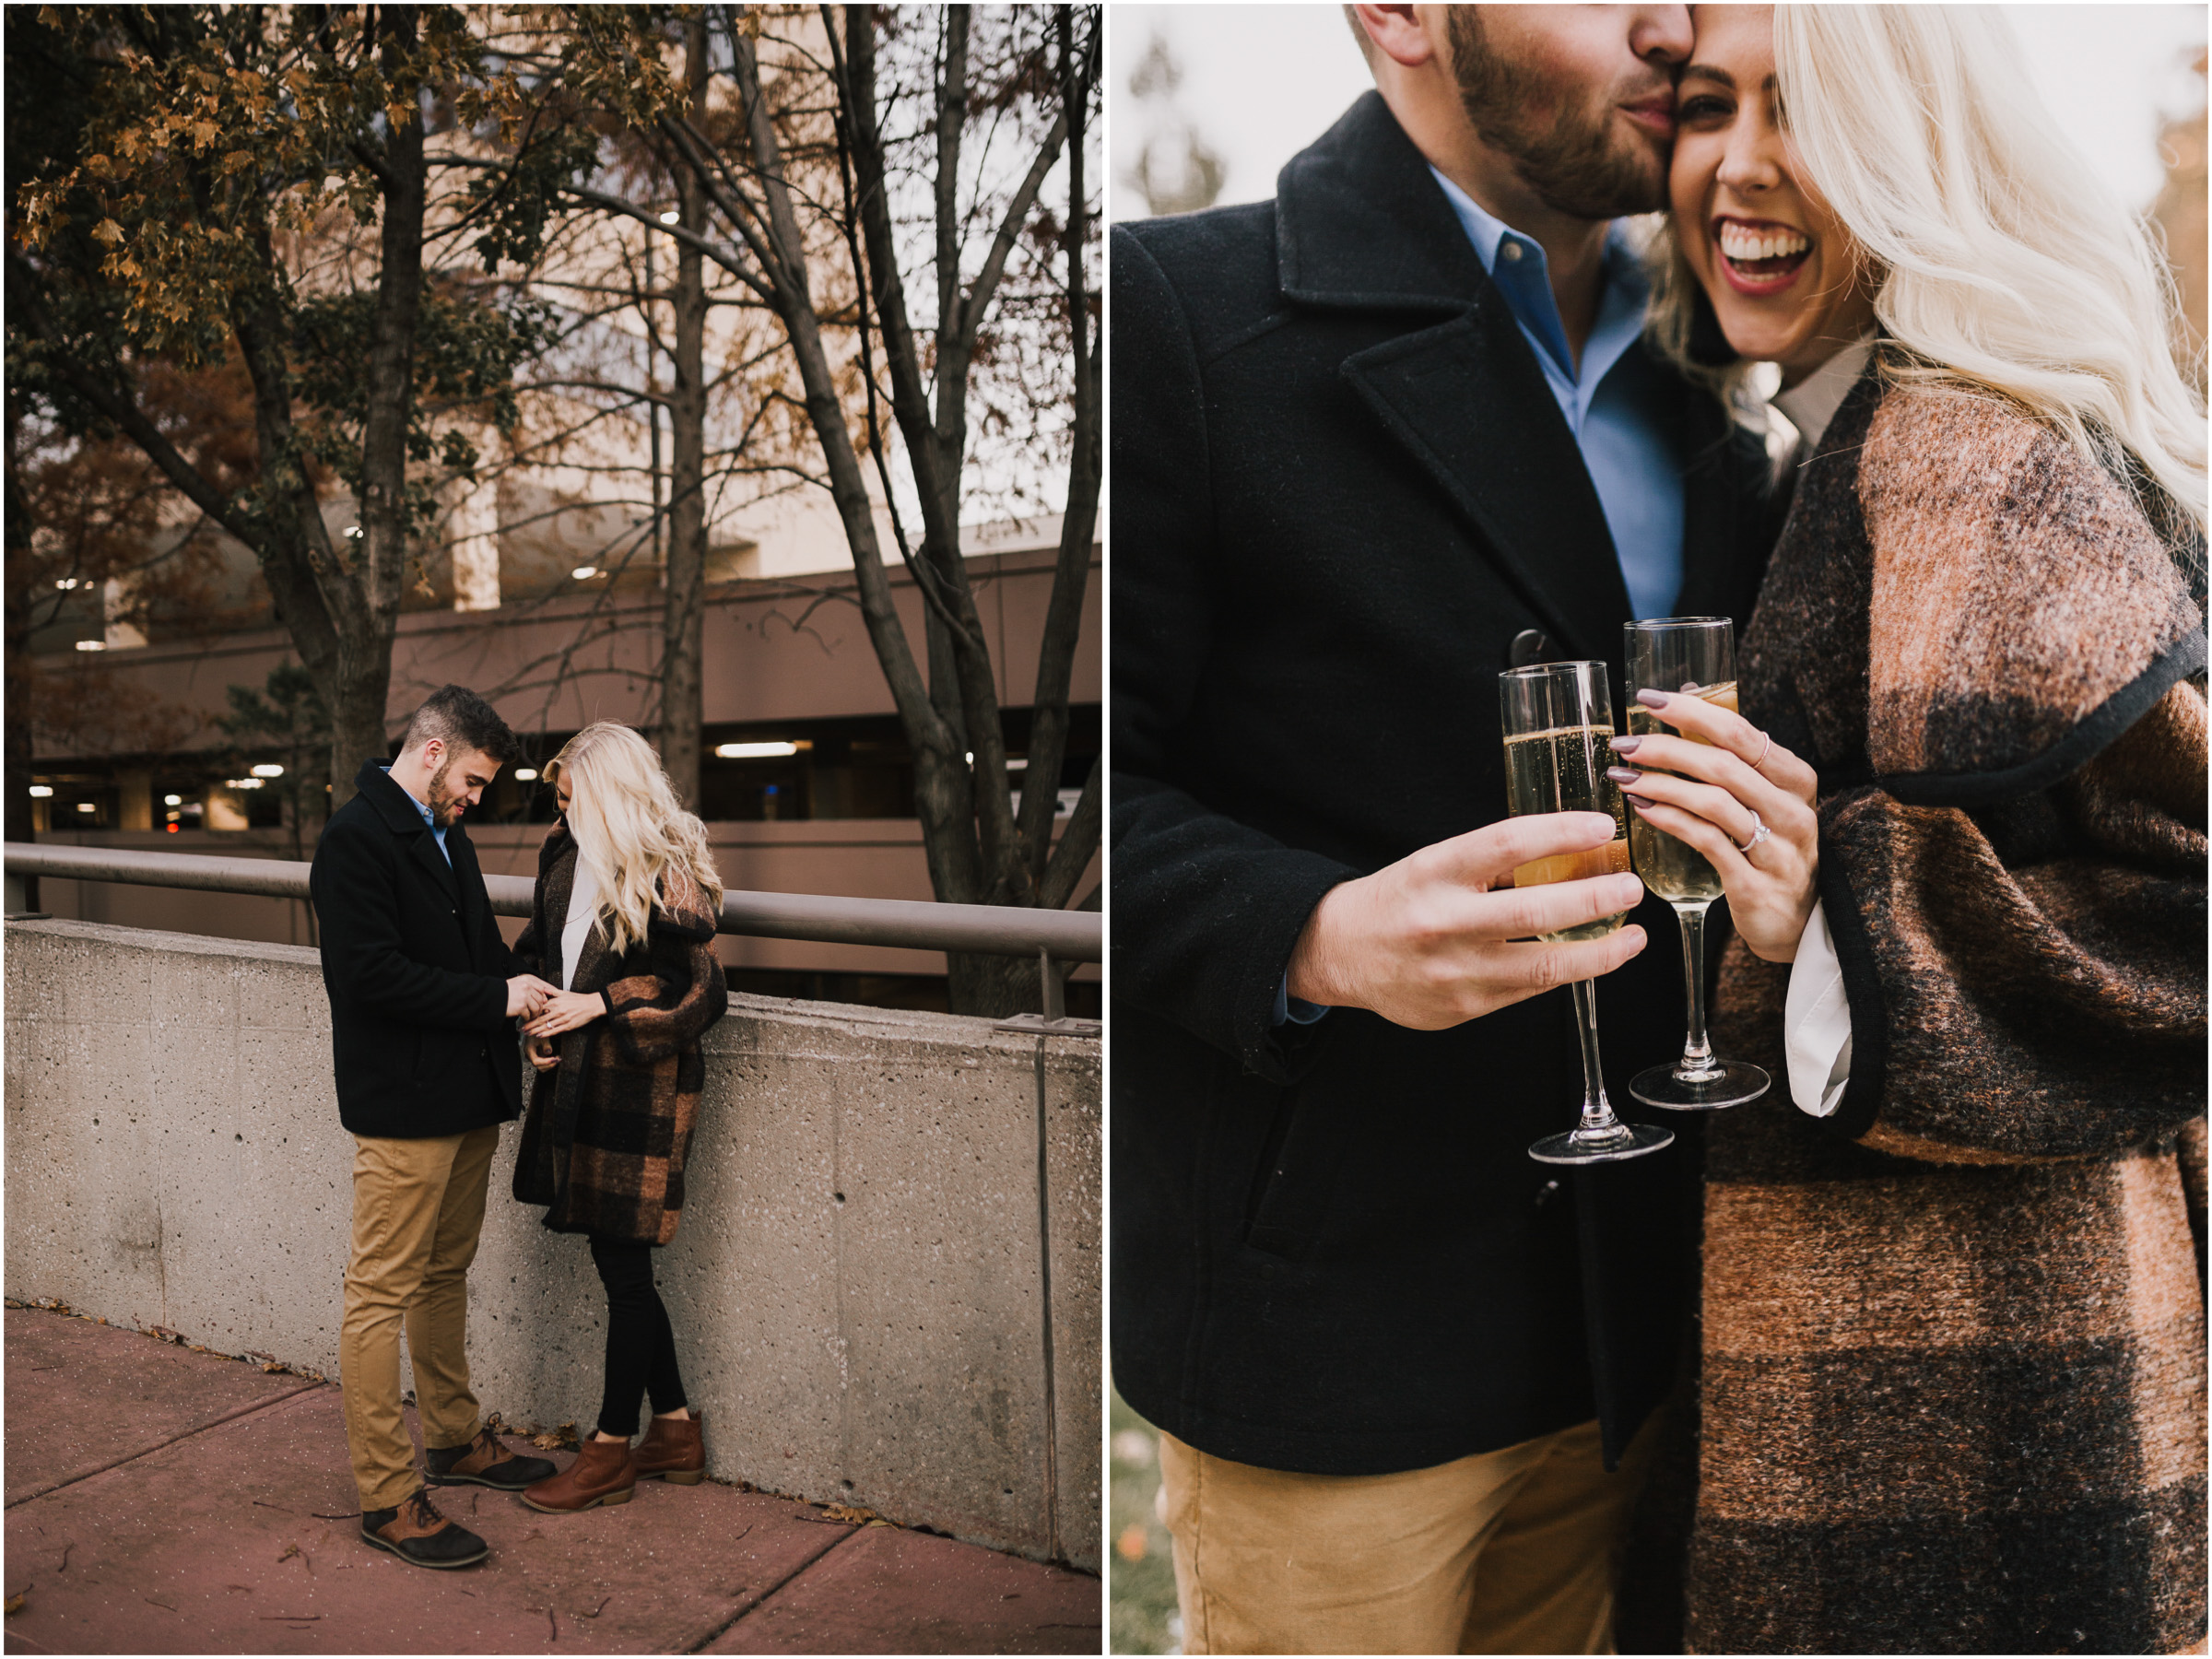 alyssa barletter photography proposal country club plaza park fall engagement how he asked she said yes-16.jpg